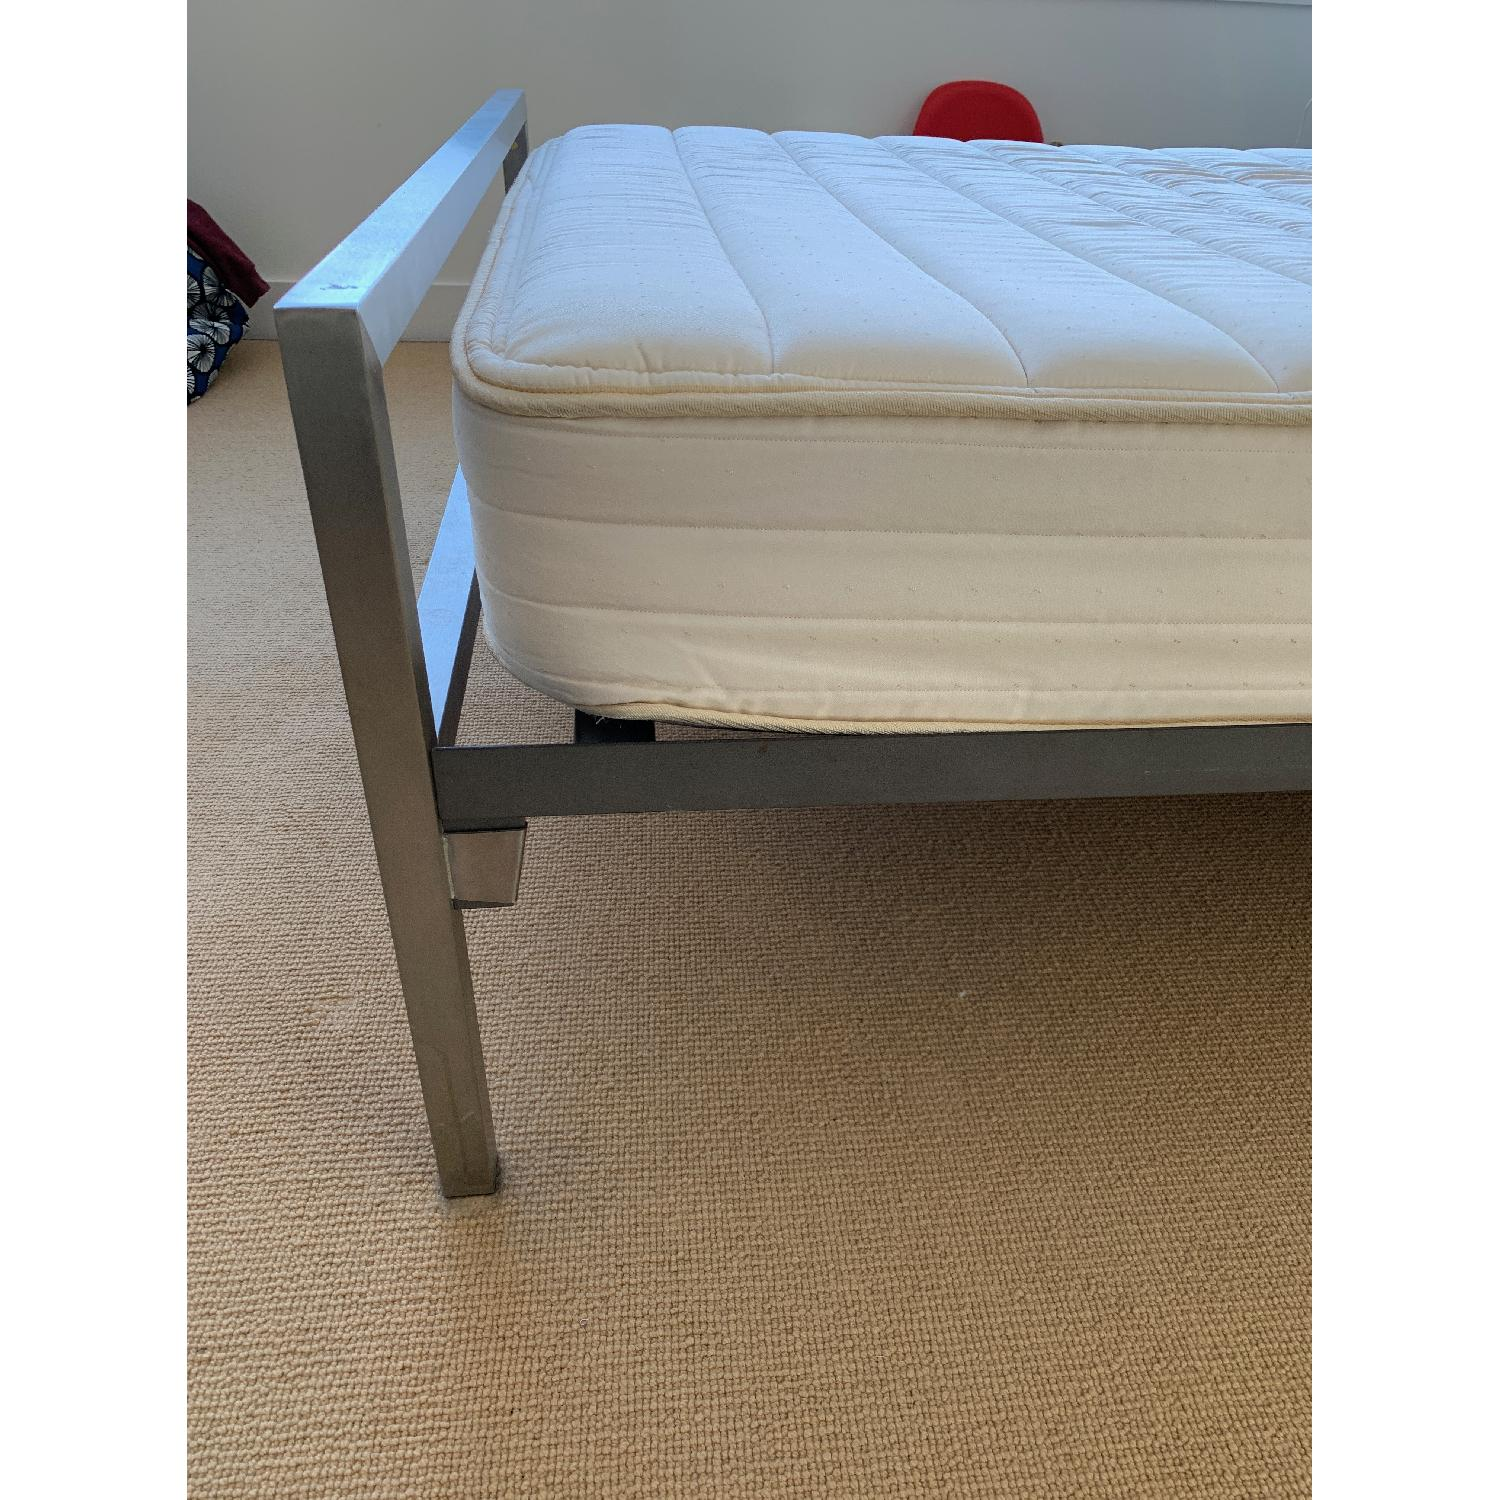 Room & Board Portica Stainless Steel Bed-2